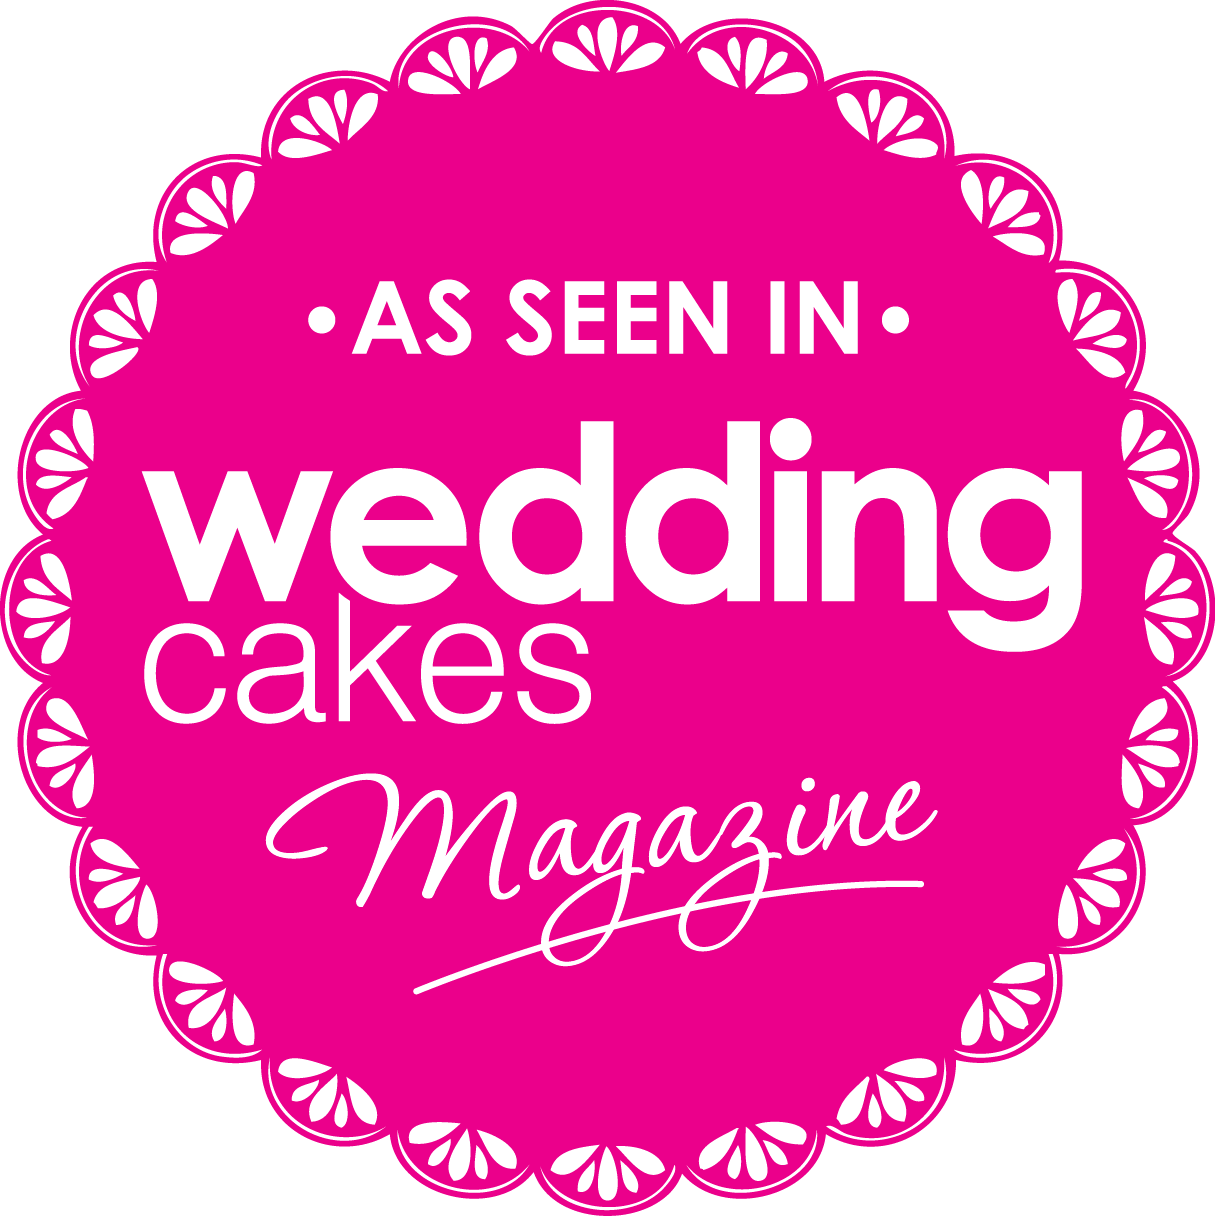 As-Seen-in-Wedding-Cakes-Magazine-stamp_-PNG-4.png